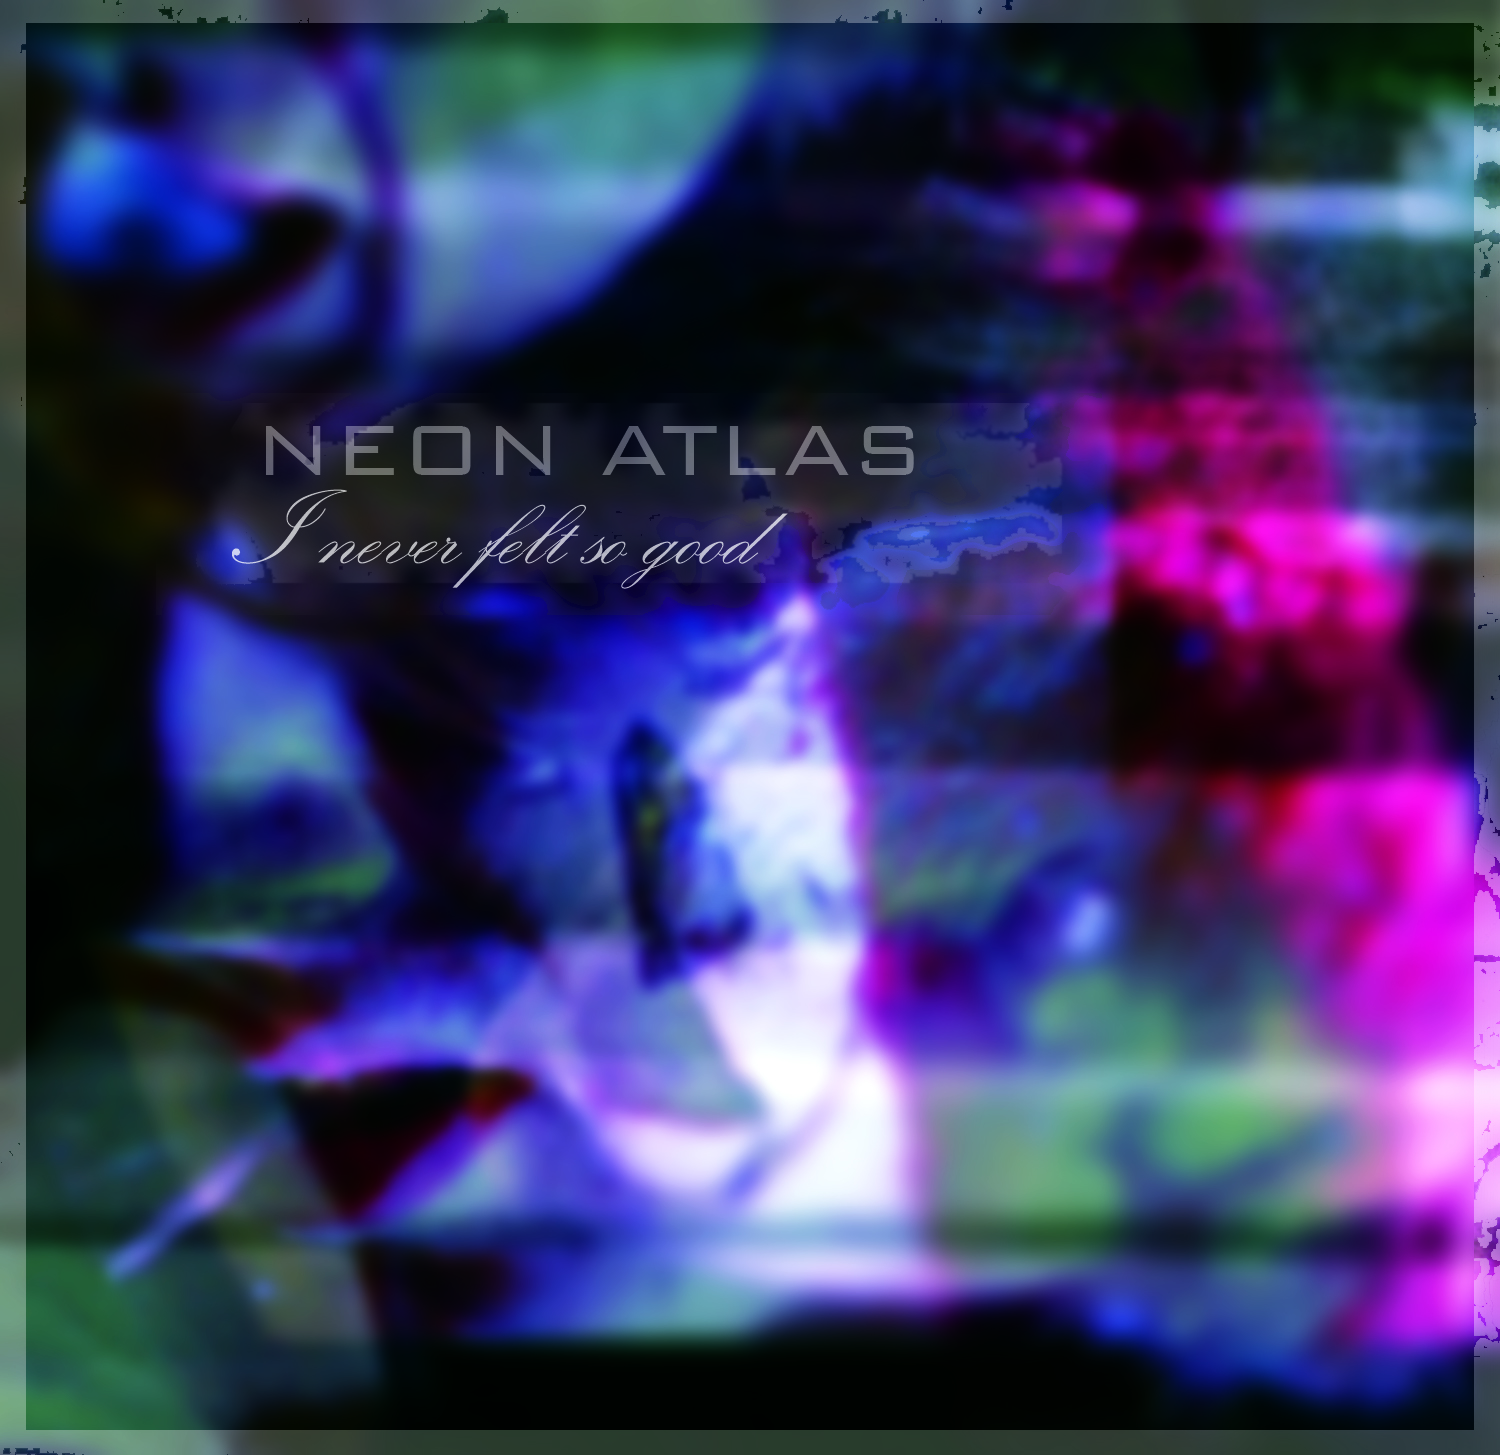 Neon Atlas - Irish Band of the Week